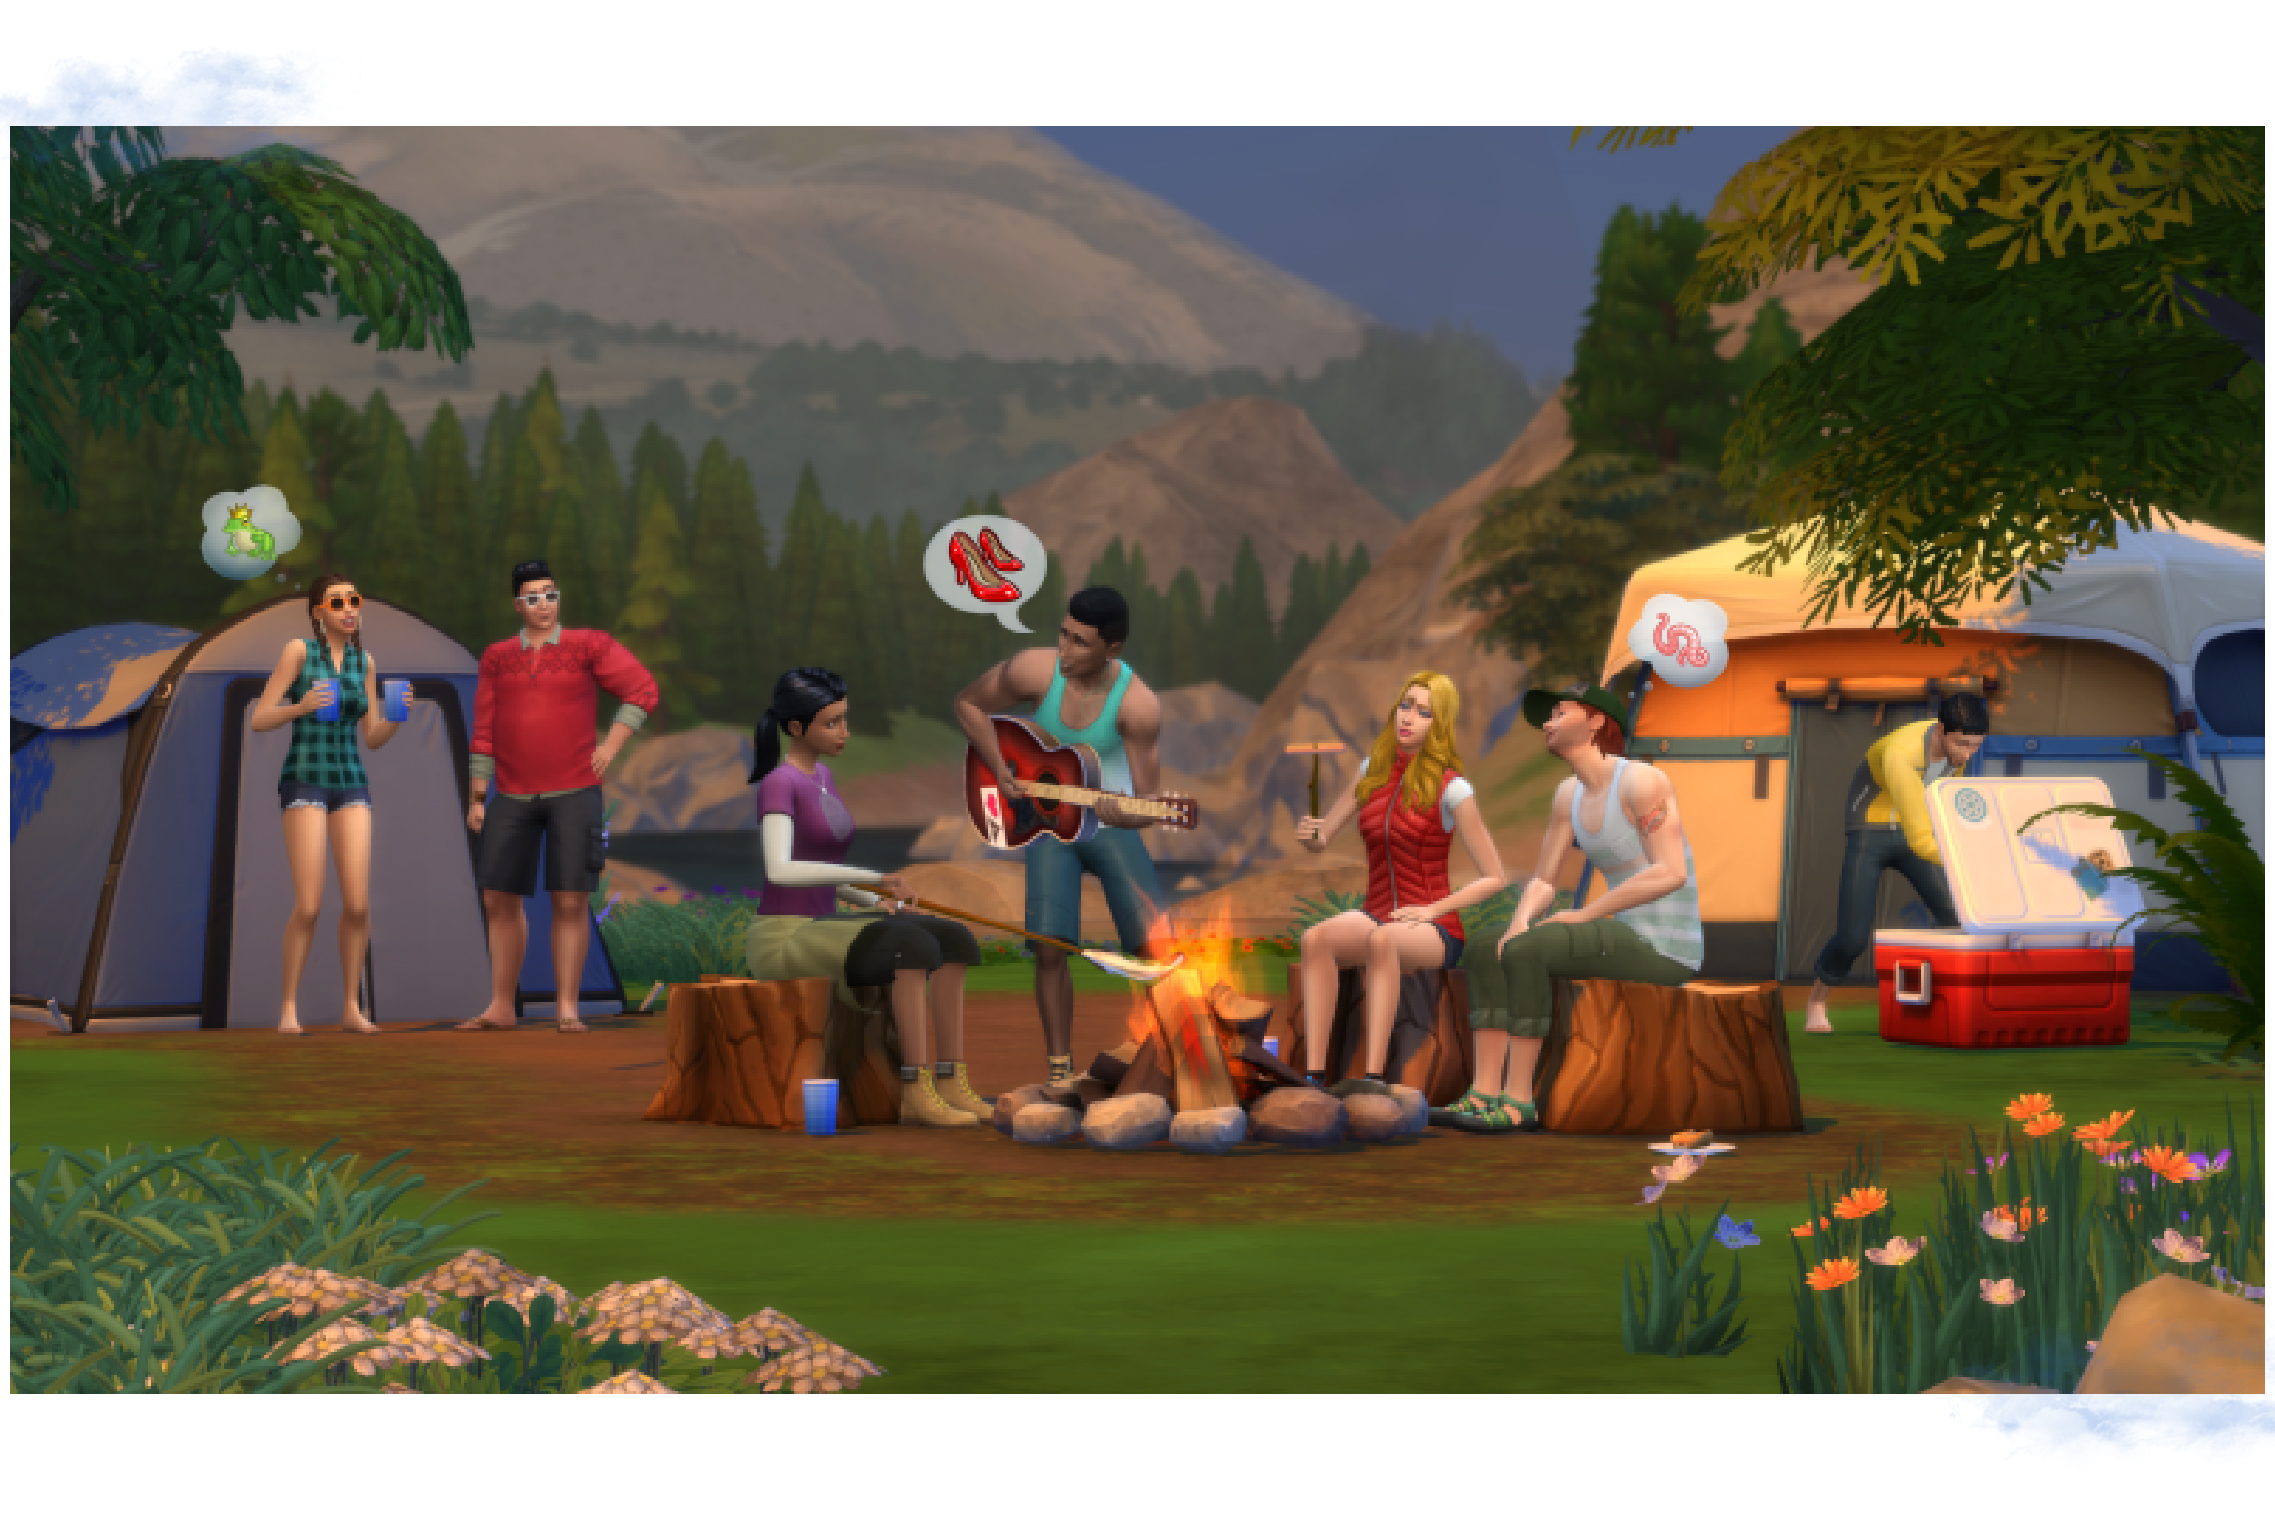 The Sims 4: Ranking the Packs 6